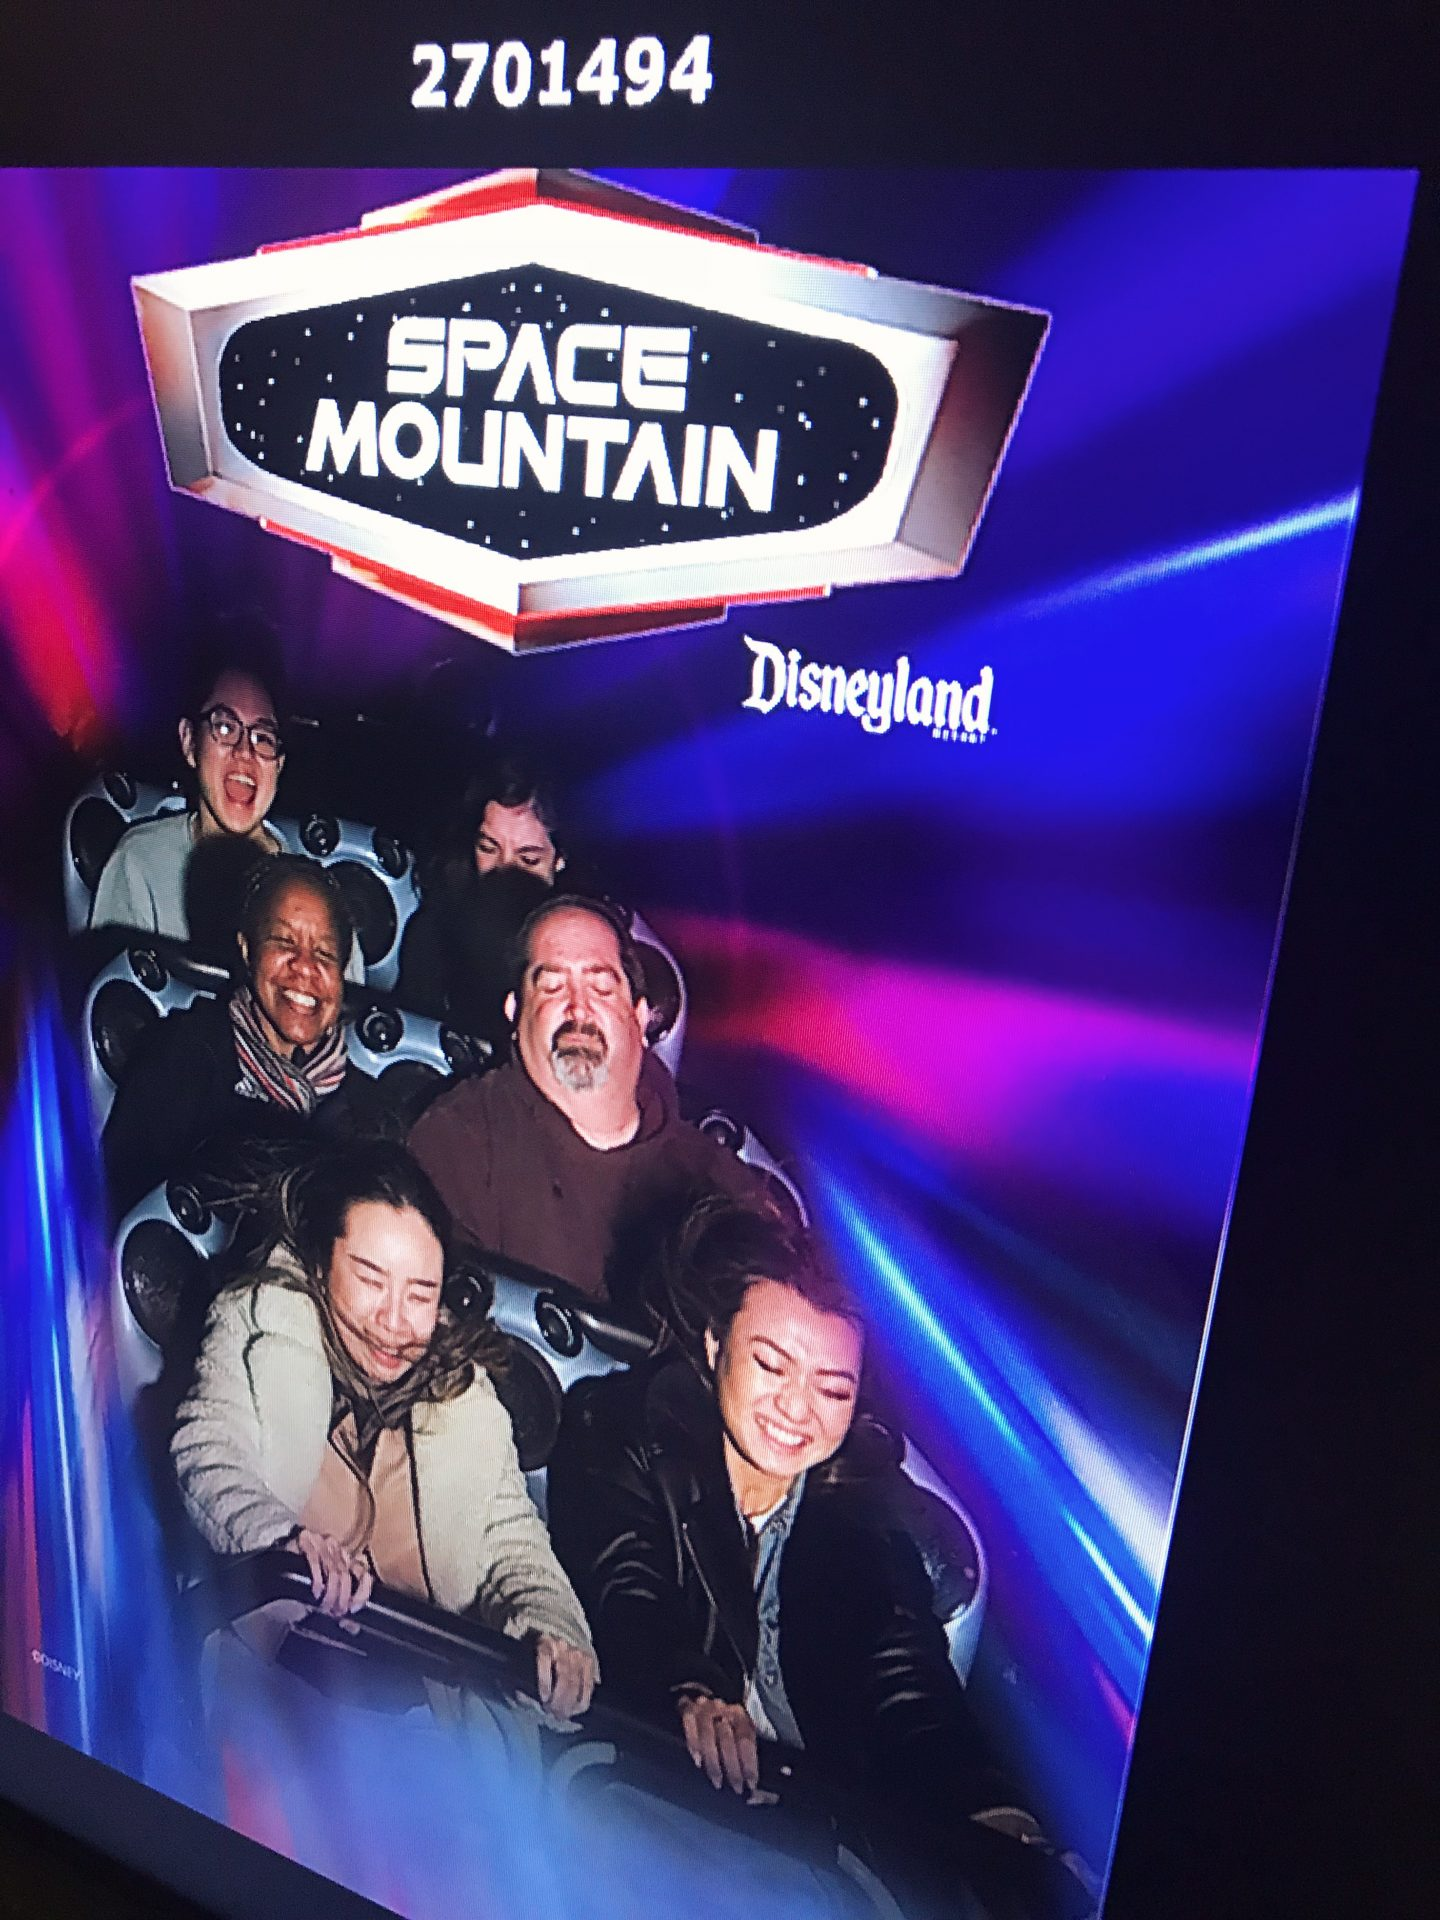 Riding Space Mountain at Disneyland in Los Angeles